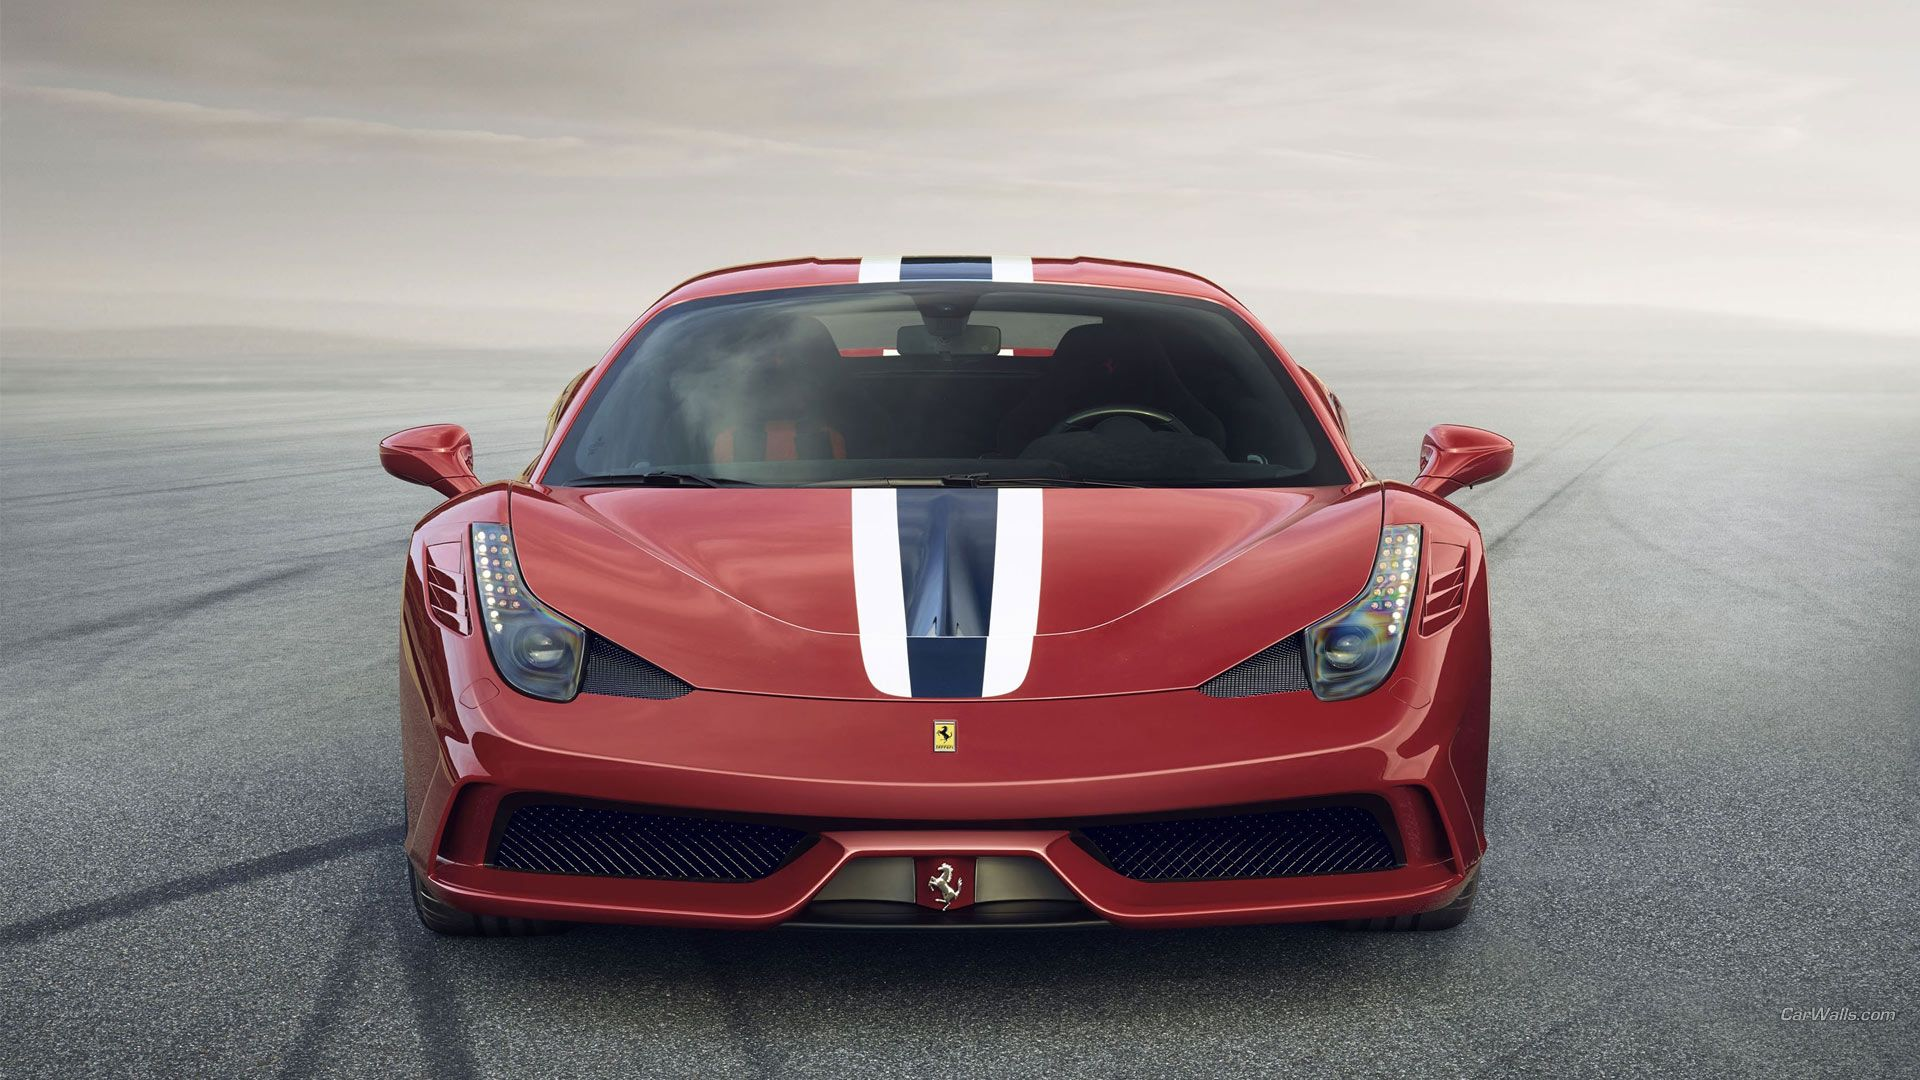 33 Ferrari 458 Speciale Hd Wallpapers Backgrounds Wallpaper Abyss Ferrari 458 Speciale Ferrari 458 Ferrari Ferrari speciale wallpaper hd